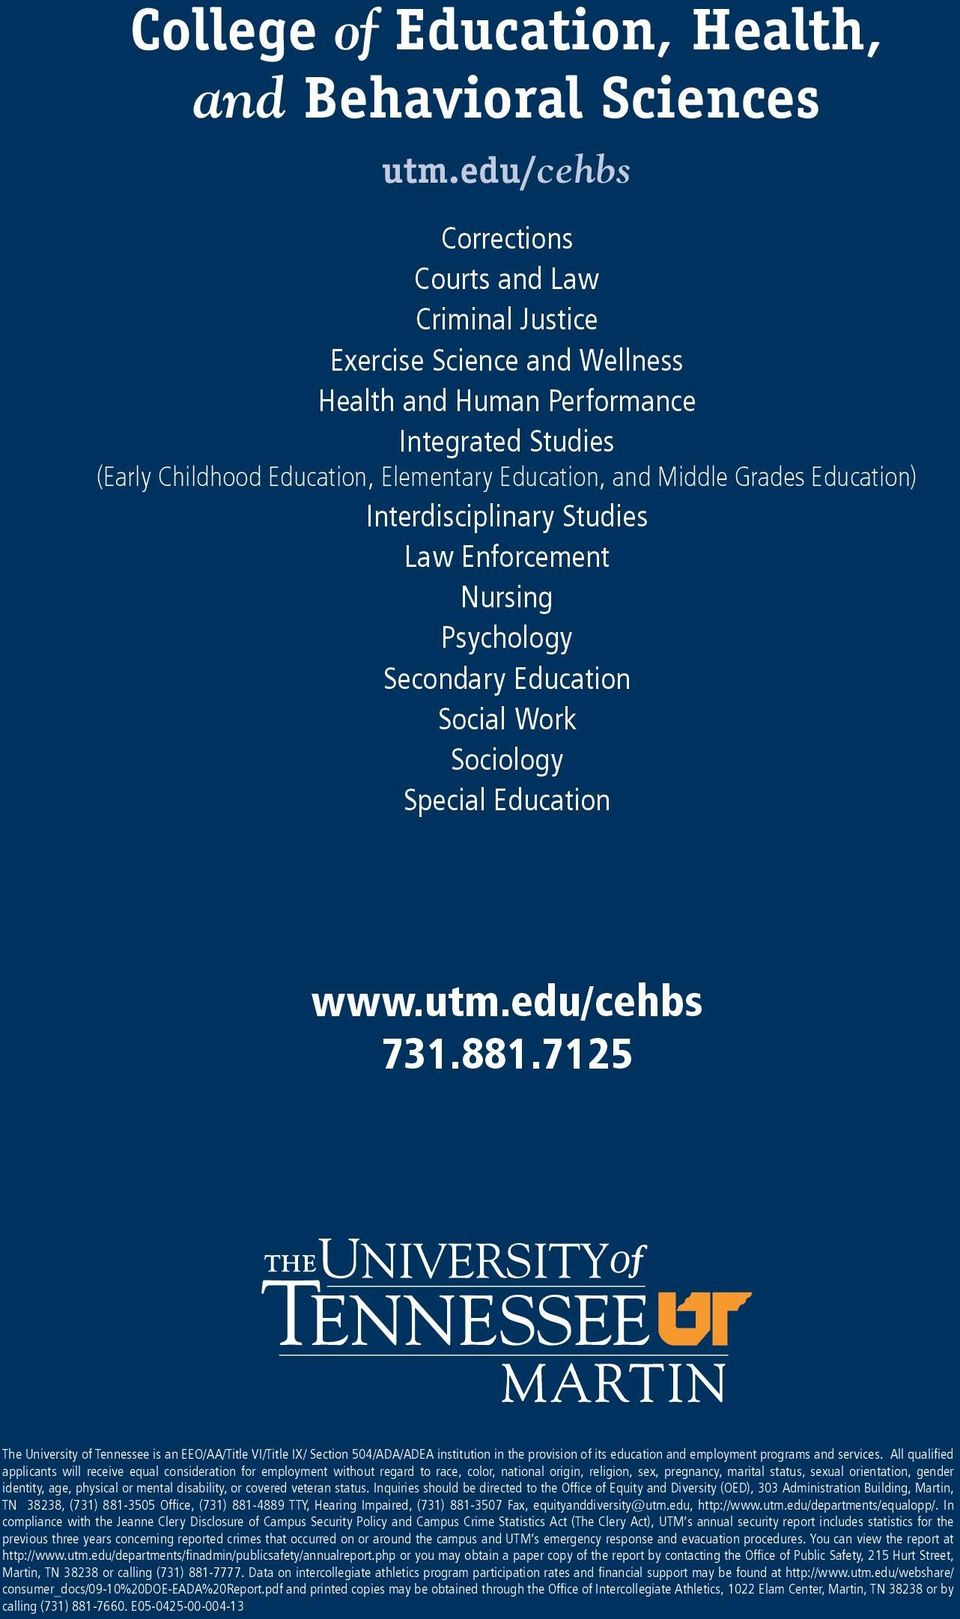 Education) Interdisciplinary Studies Law Enforcement Psychology Social Work Sociology Special Education www.utm.edu/cehbs 731.881.